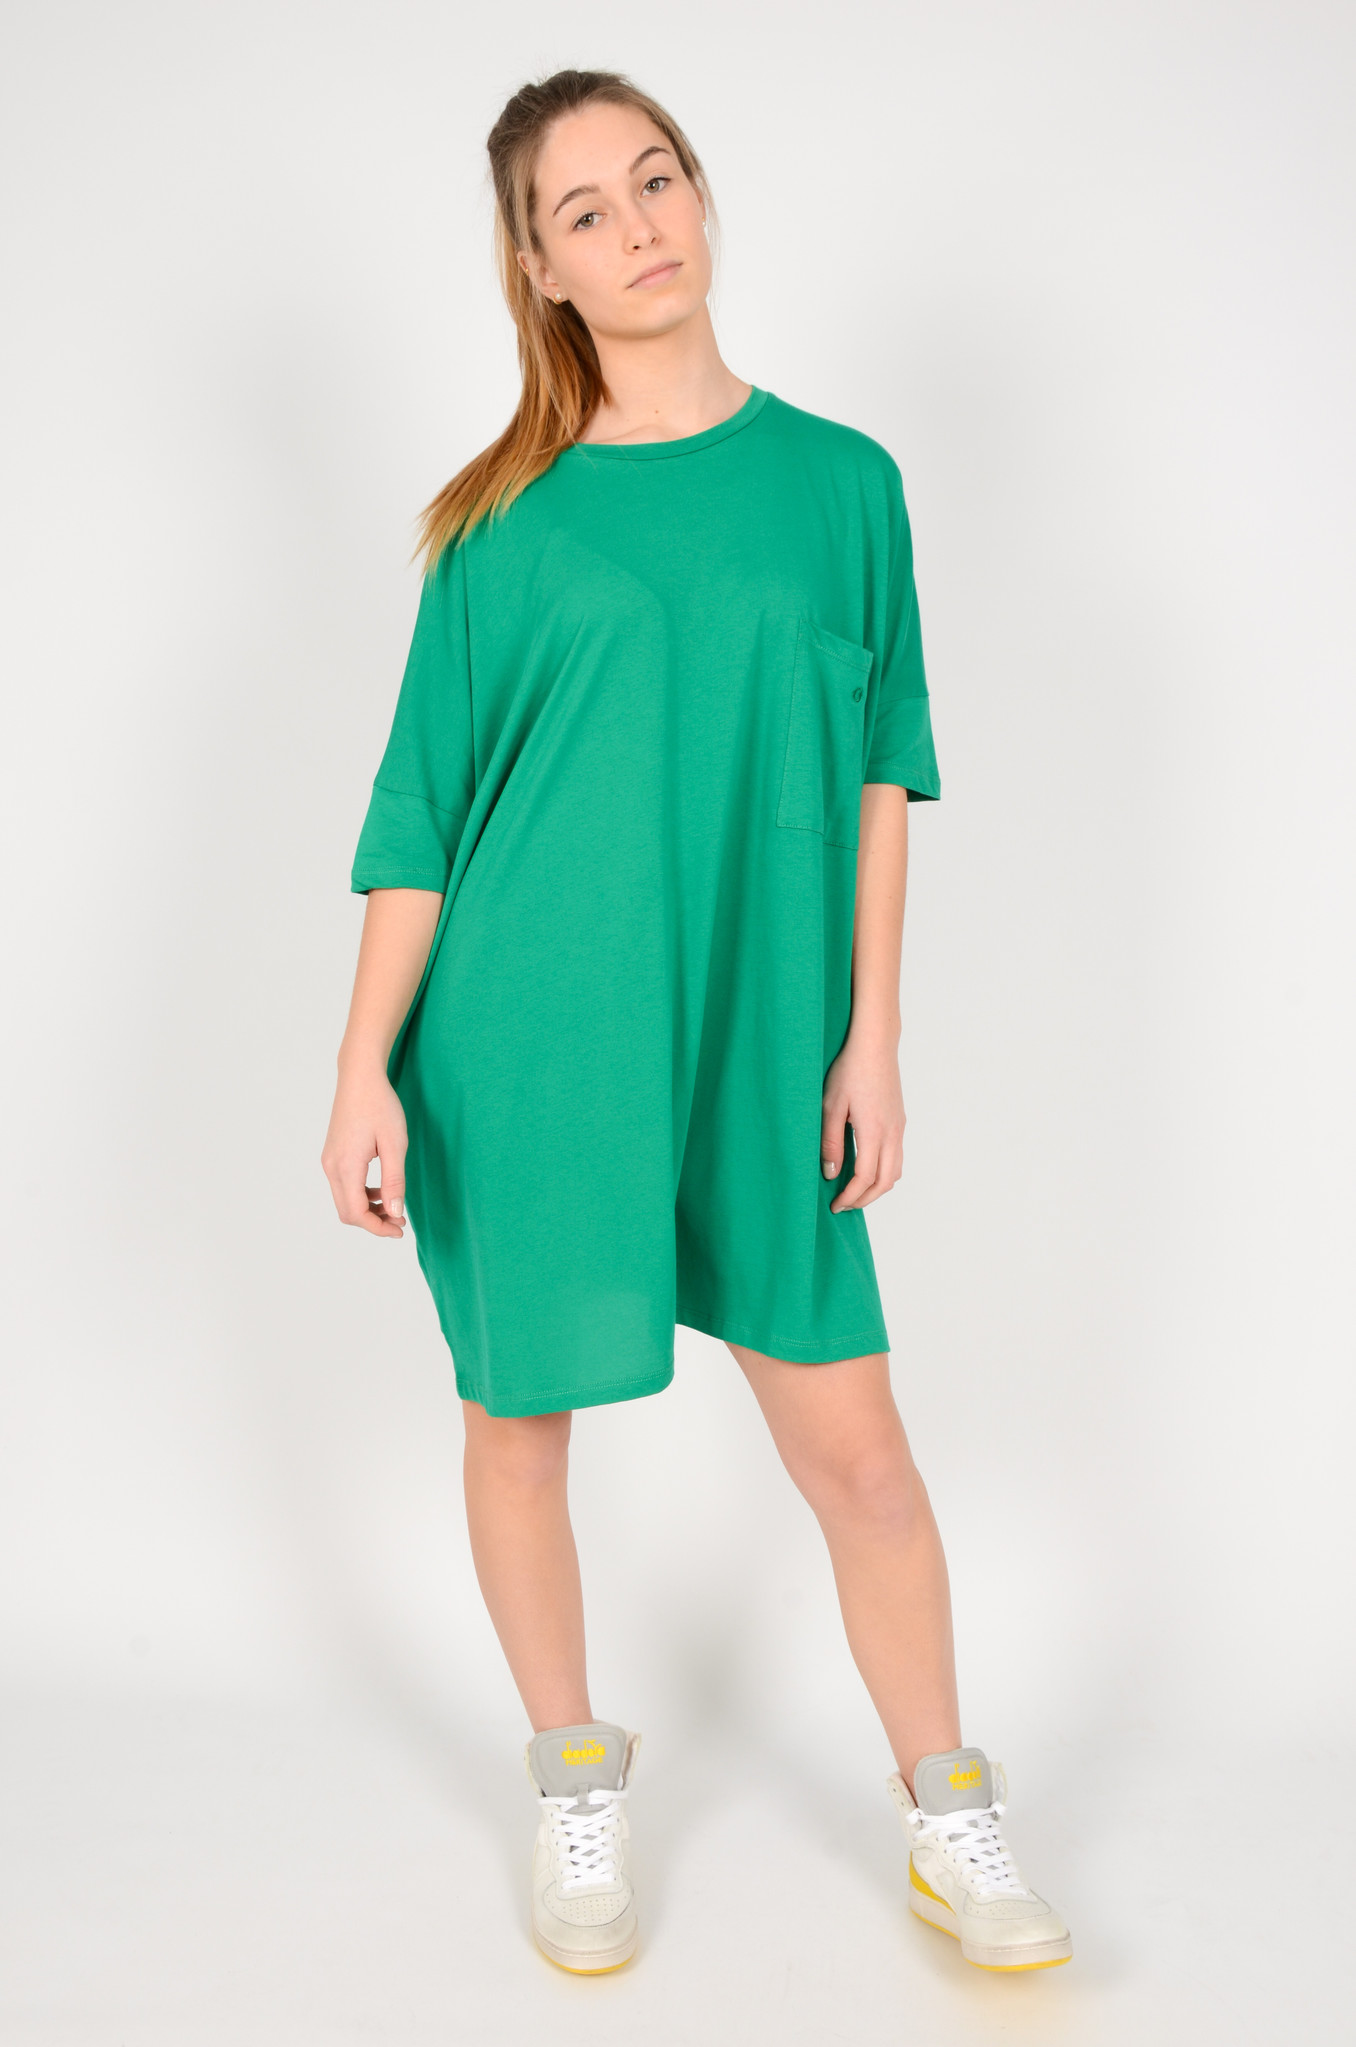 T-DRESS IN GREEN-1